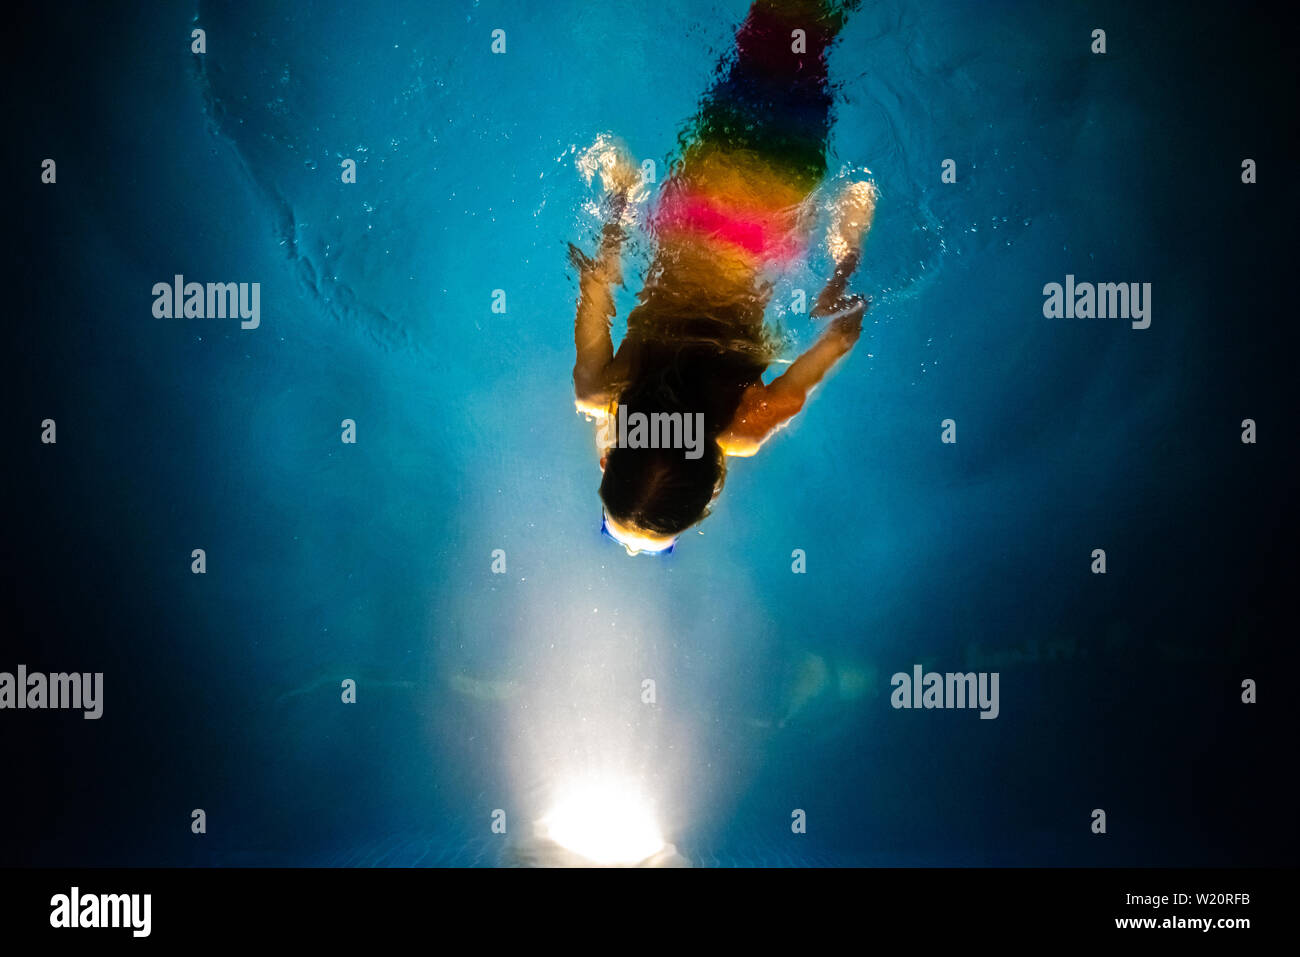 Mermaid diving towards the light of a blue pool at night, with a dreamlike background of fantasy and imagination. Stock Photo